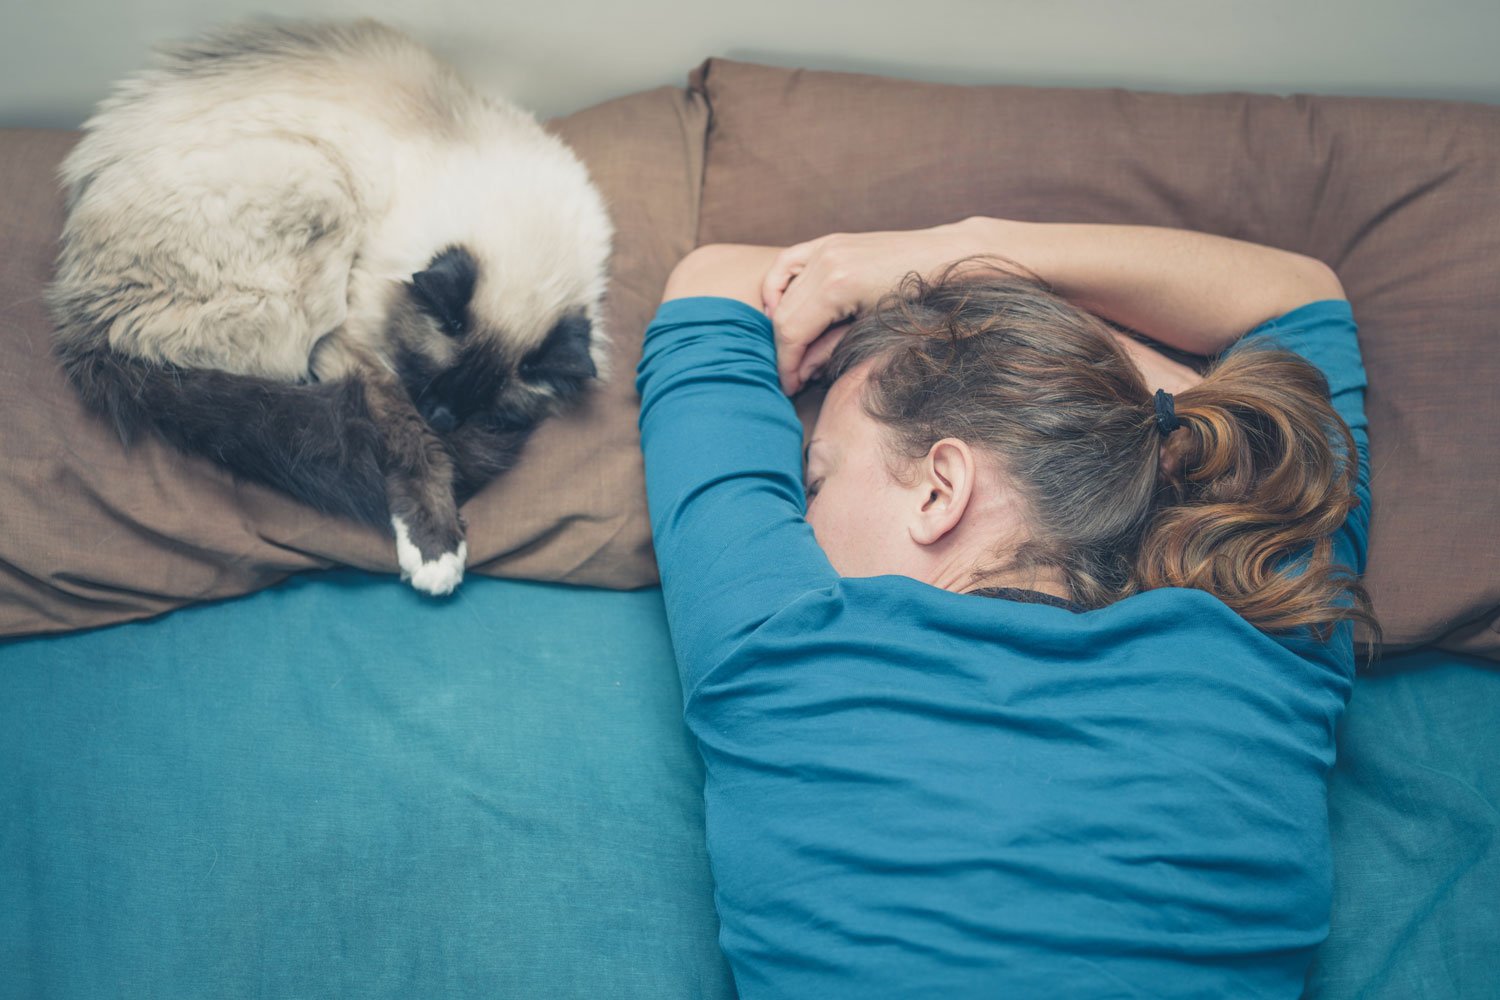 Cat snuggling on a pillow next to her owner, How Do Cats Choose Who to Sleep With?